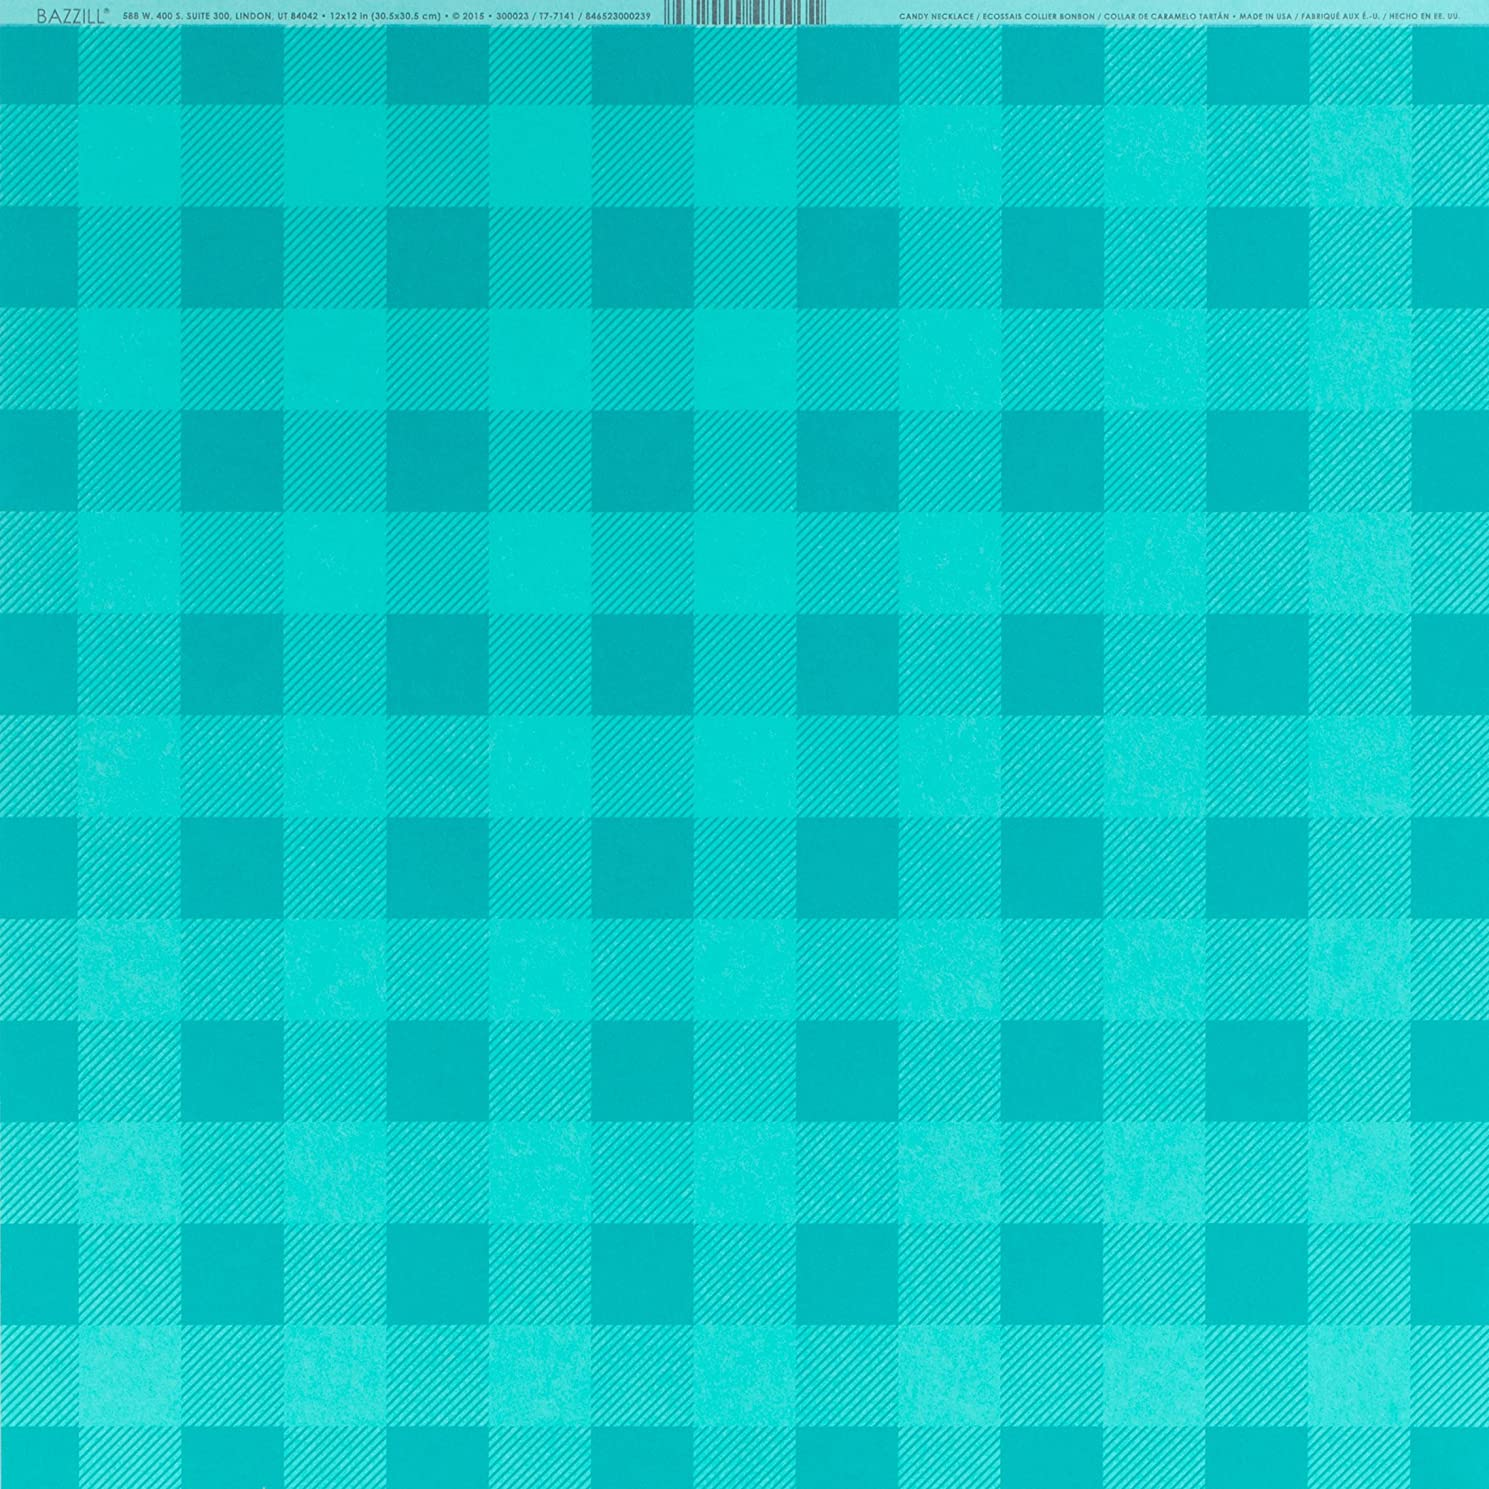 American Crafts Bazzill Basics Plaid Cardstock 12 X 12 Inch 25 Pack Plaid Candy Necklace